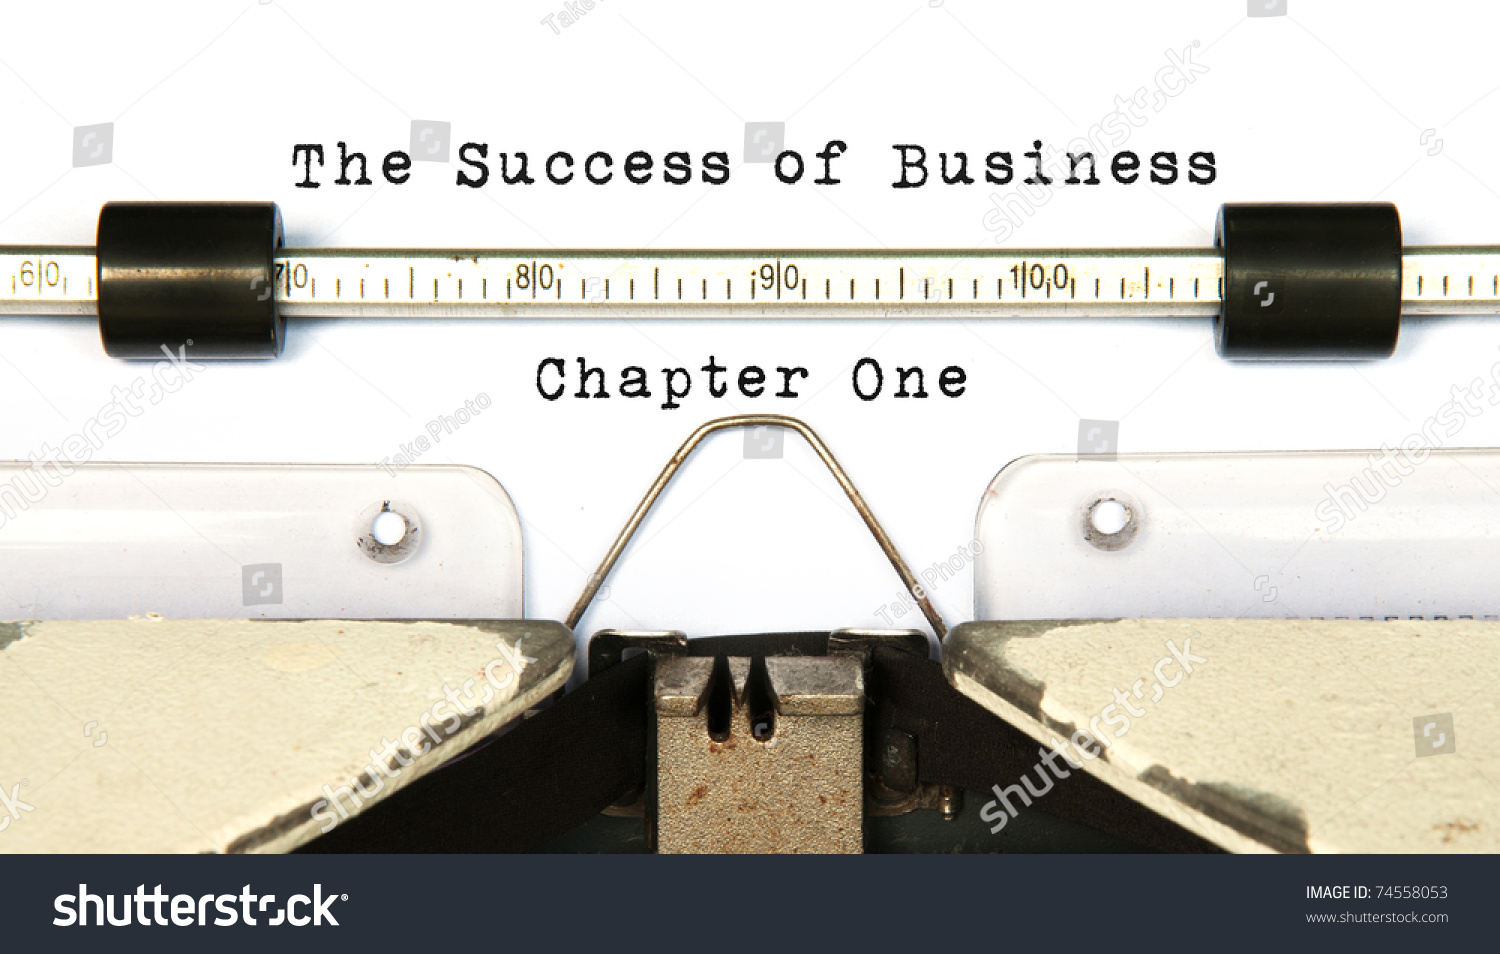 Business chapter one